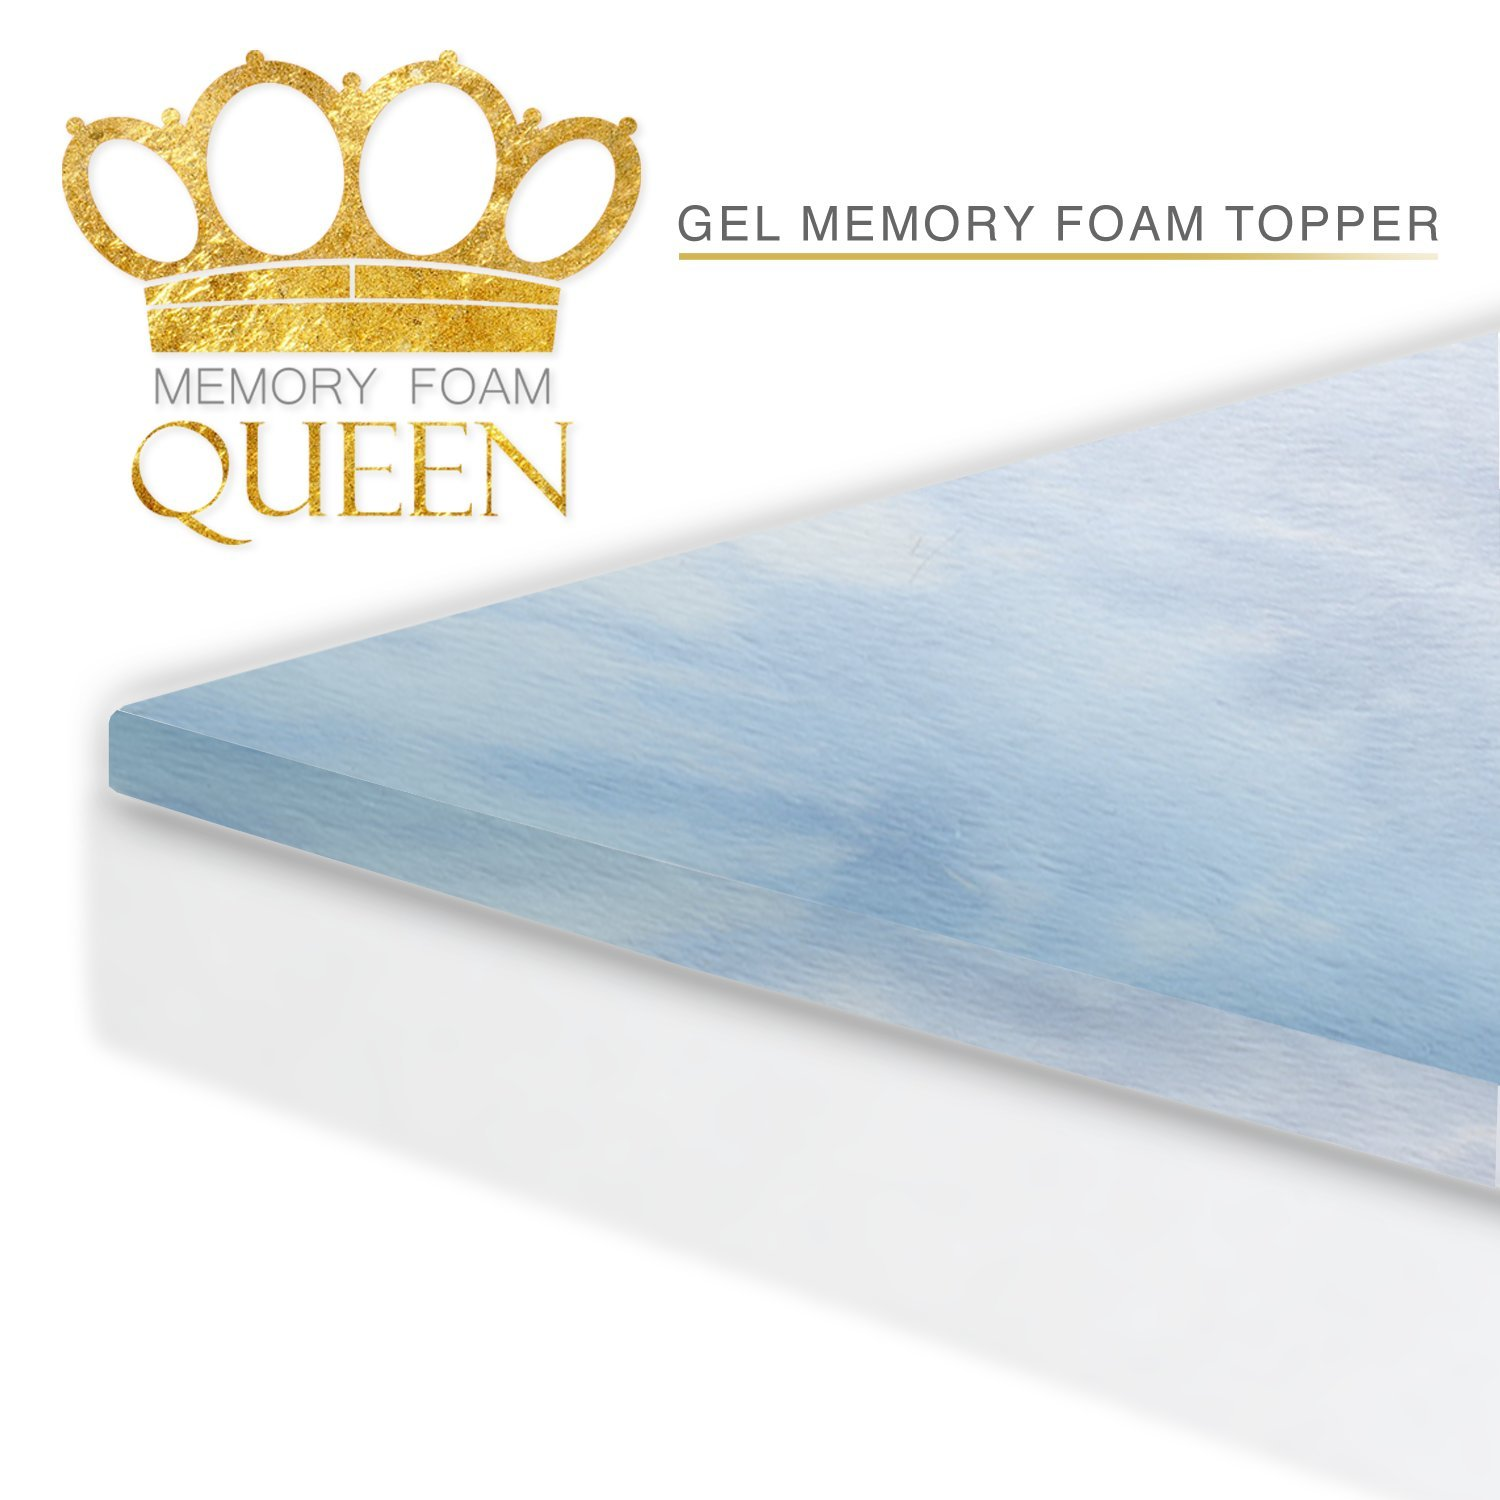 Memory Foam Cool Gel Mattress Topper ( King Size ). For Better Sleep and Extra Comfort. 60 Night Sleep Trial. Made In USA. Mattress Pad Perfect for Improving Existing Mattresses